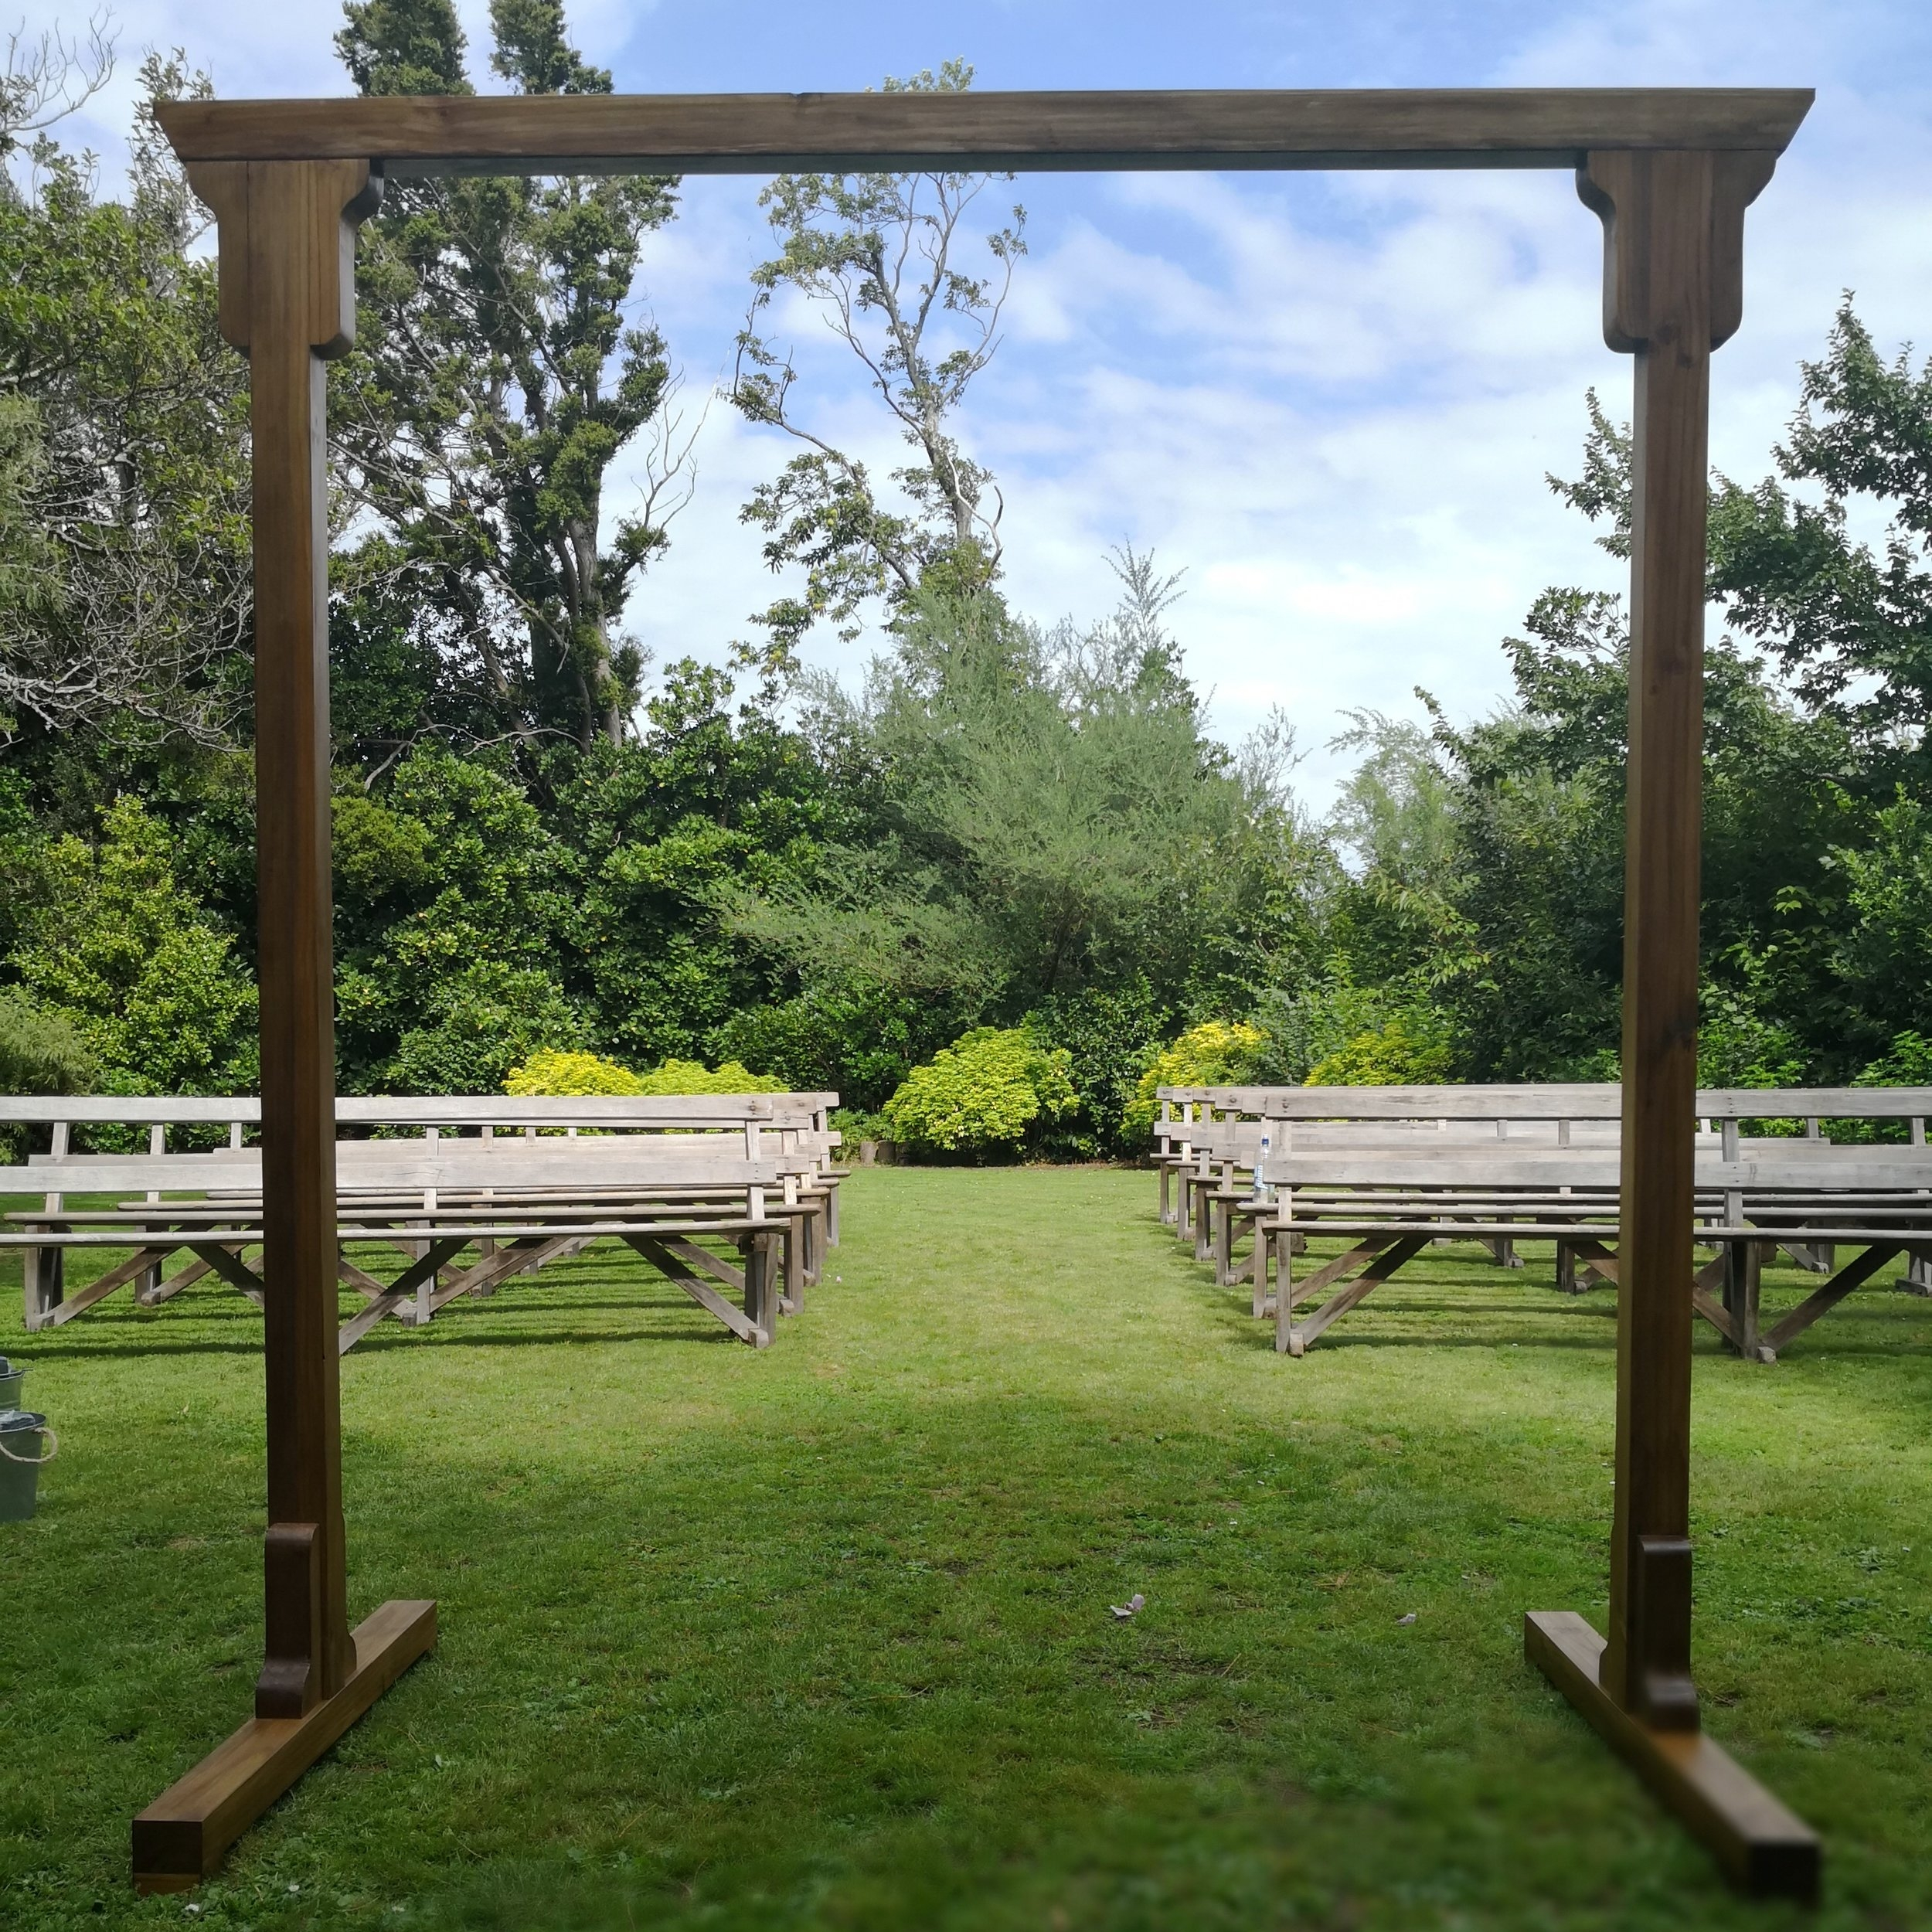 ORNAMENTAL ARCH I $120  2300Hx2250W  Dark ornamental arch  A ready to use arch with a stunning dark coat is great for an elegant touch in a garden style wedding. This can stand on its own or be customised.  *Breaks into 3 pieces for easy transportation & setup